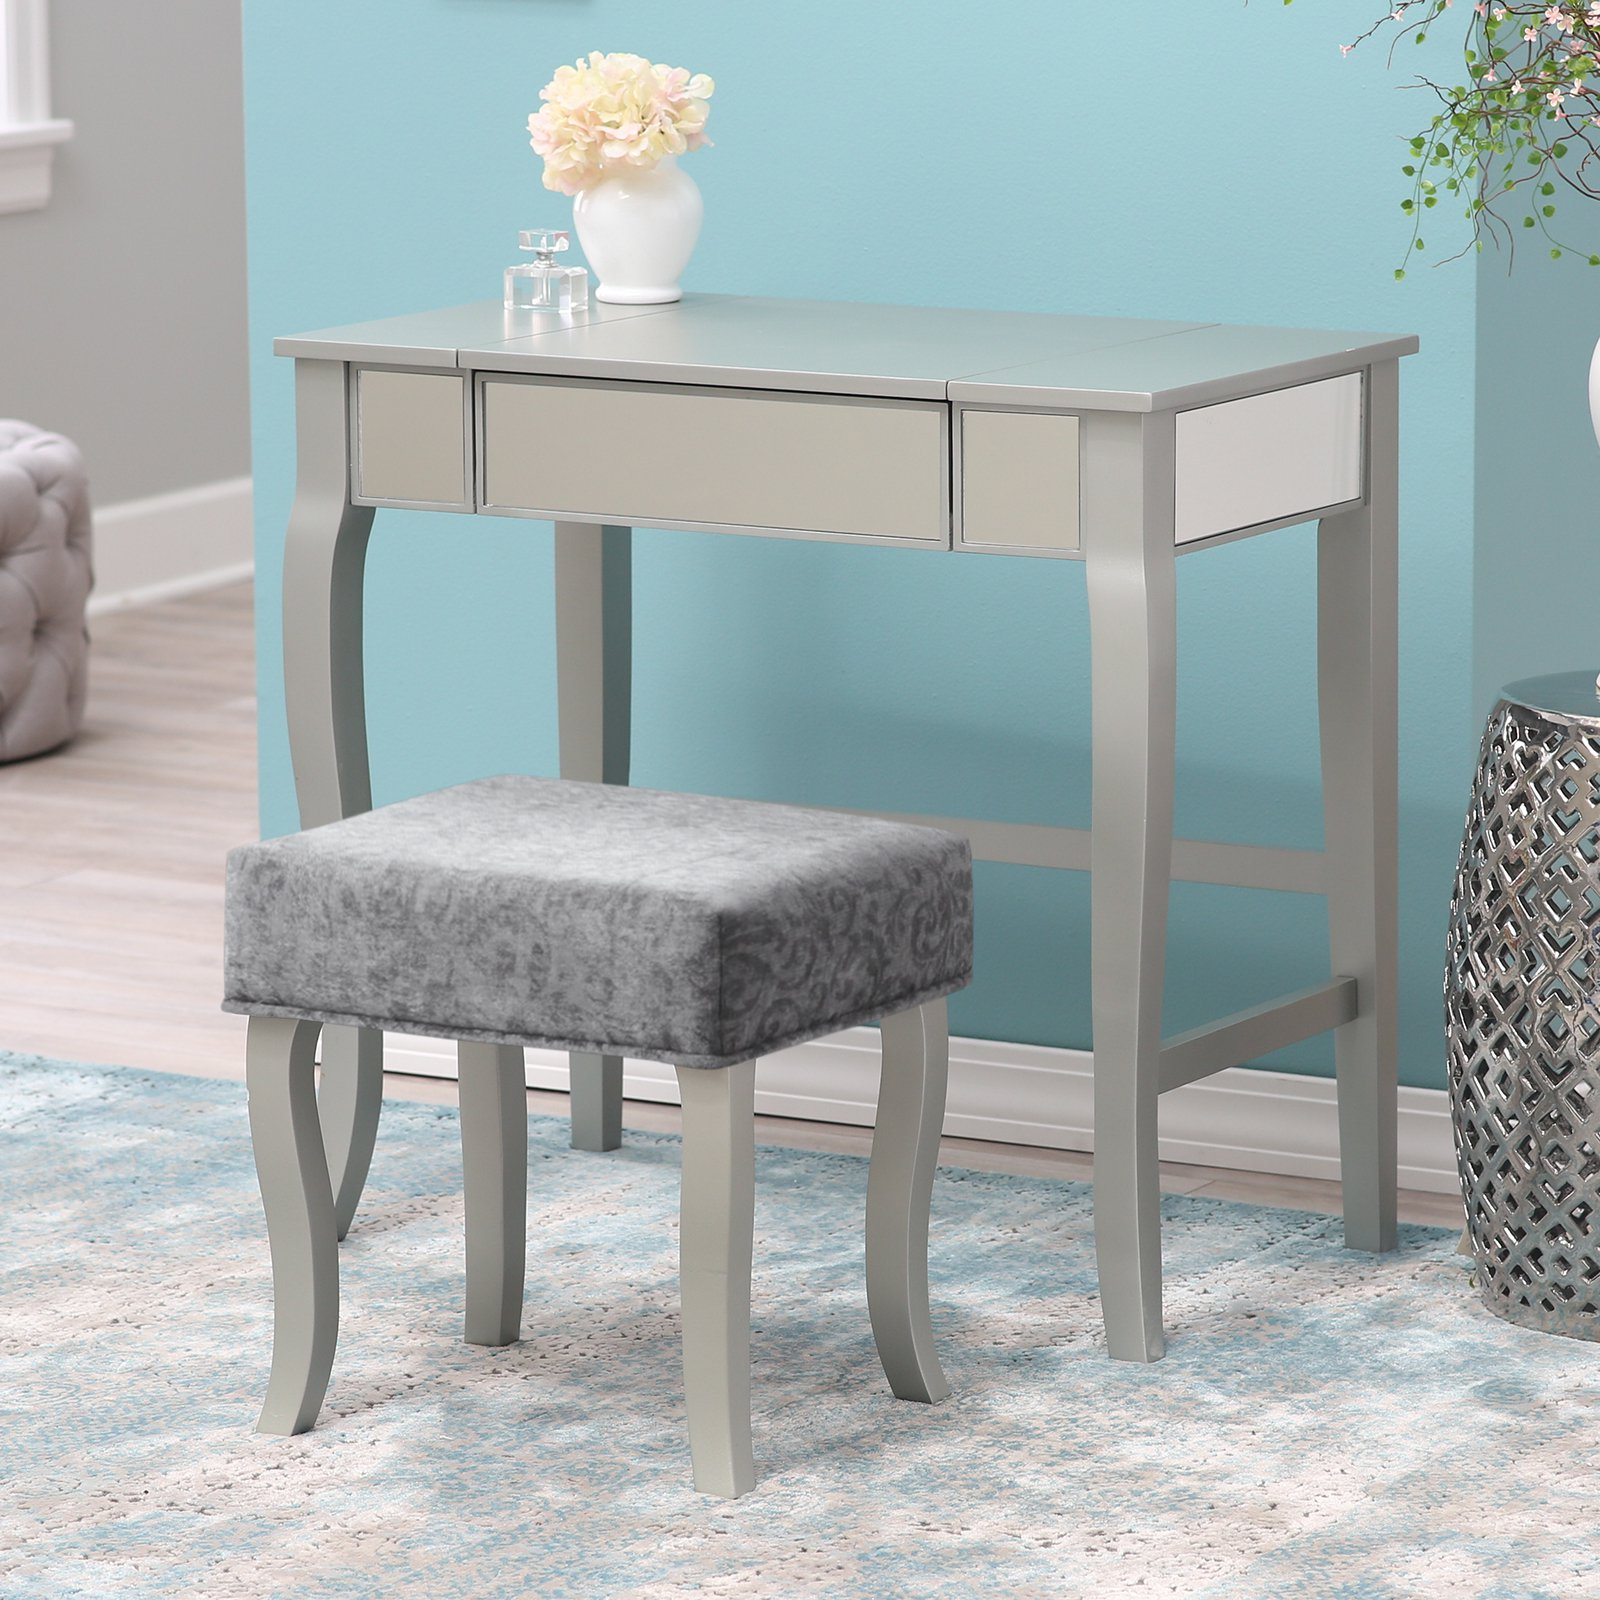 table up sterling lights bathroom single then ideas anddesk in sink design round lit makeup vanity encouraging square as for wells mirror mirrored lighted and mutable drawers oa encouragement